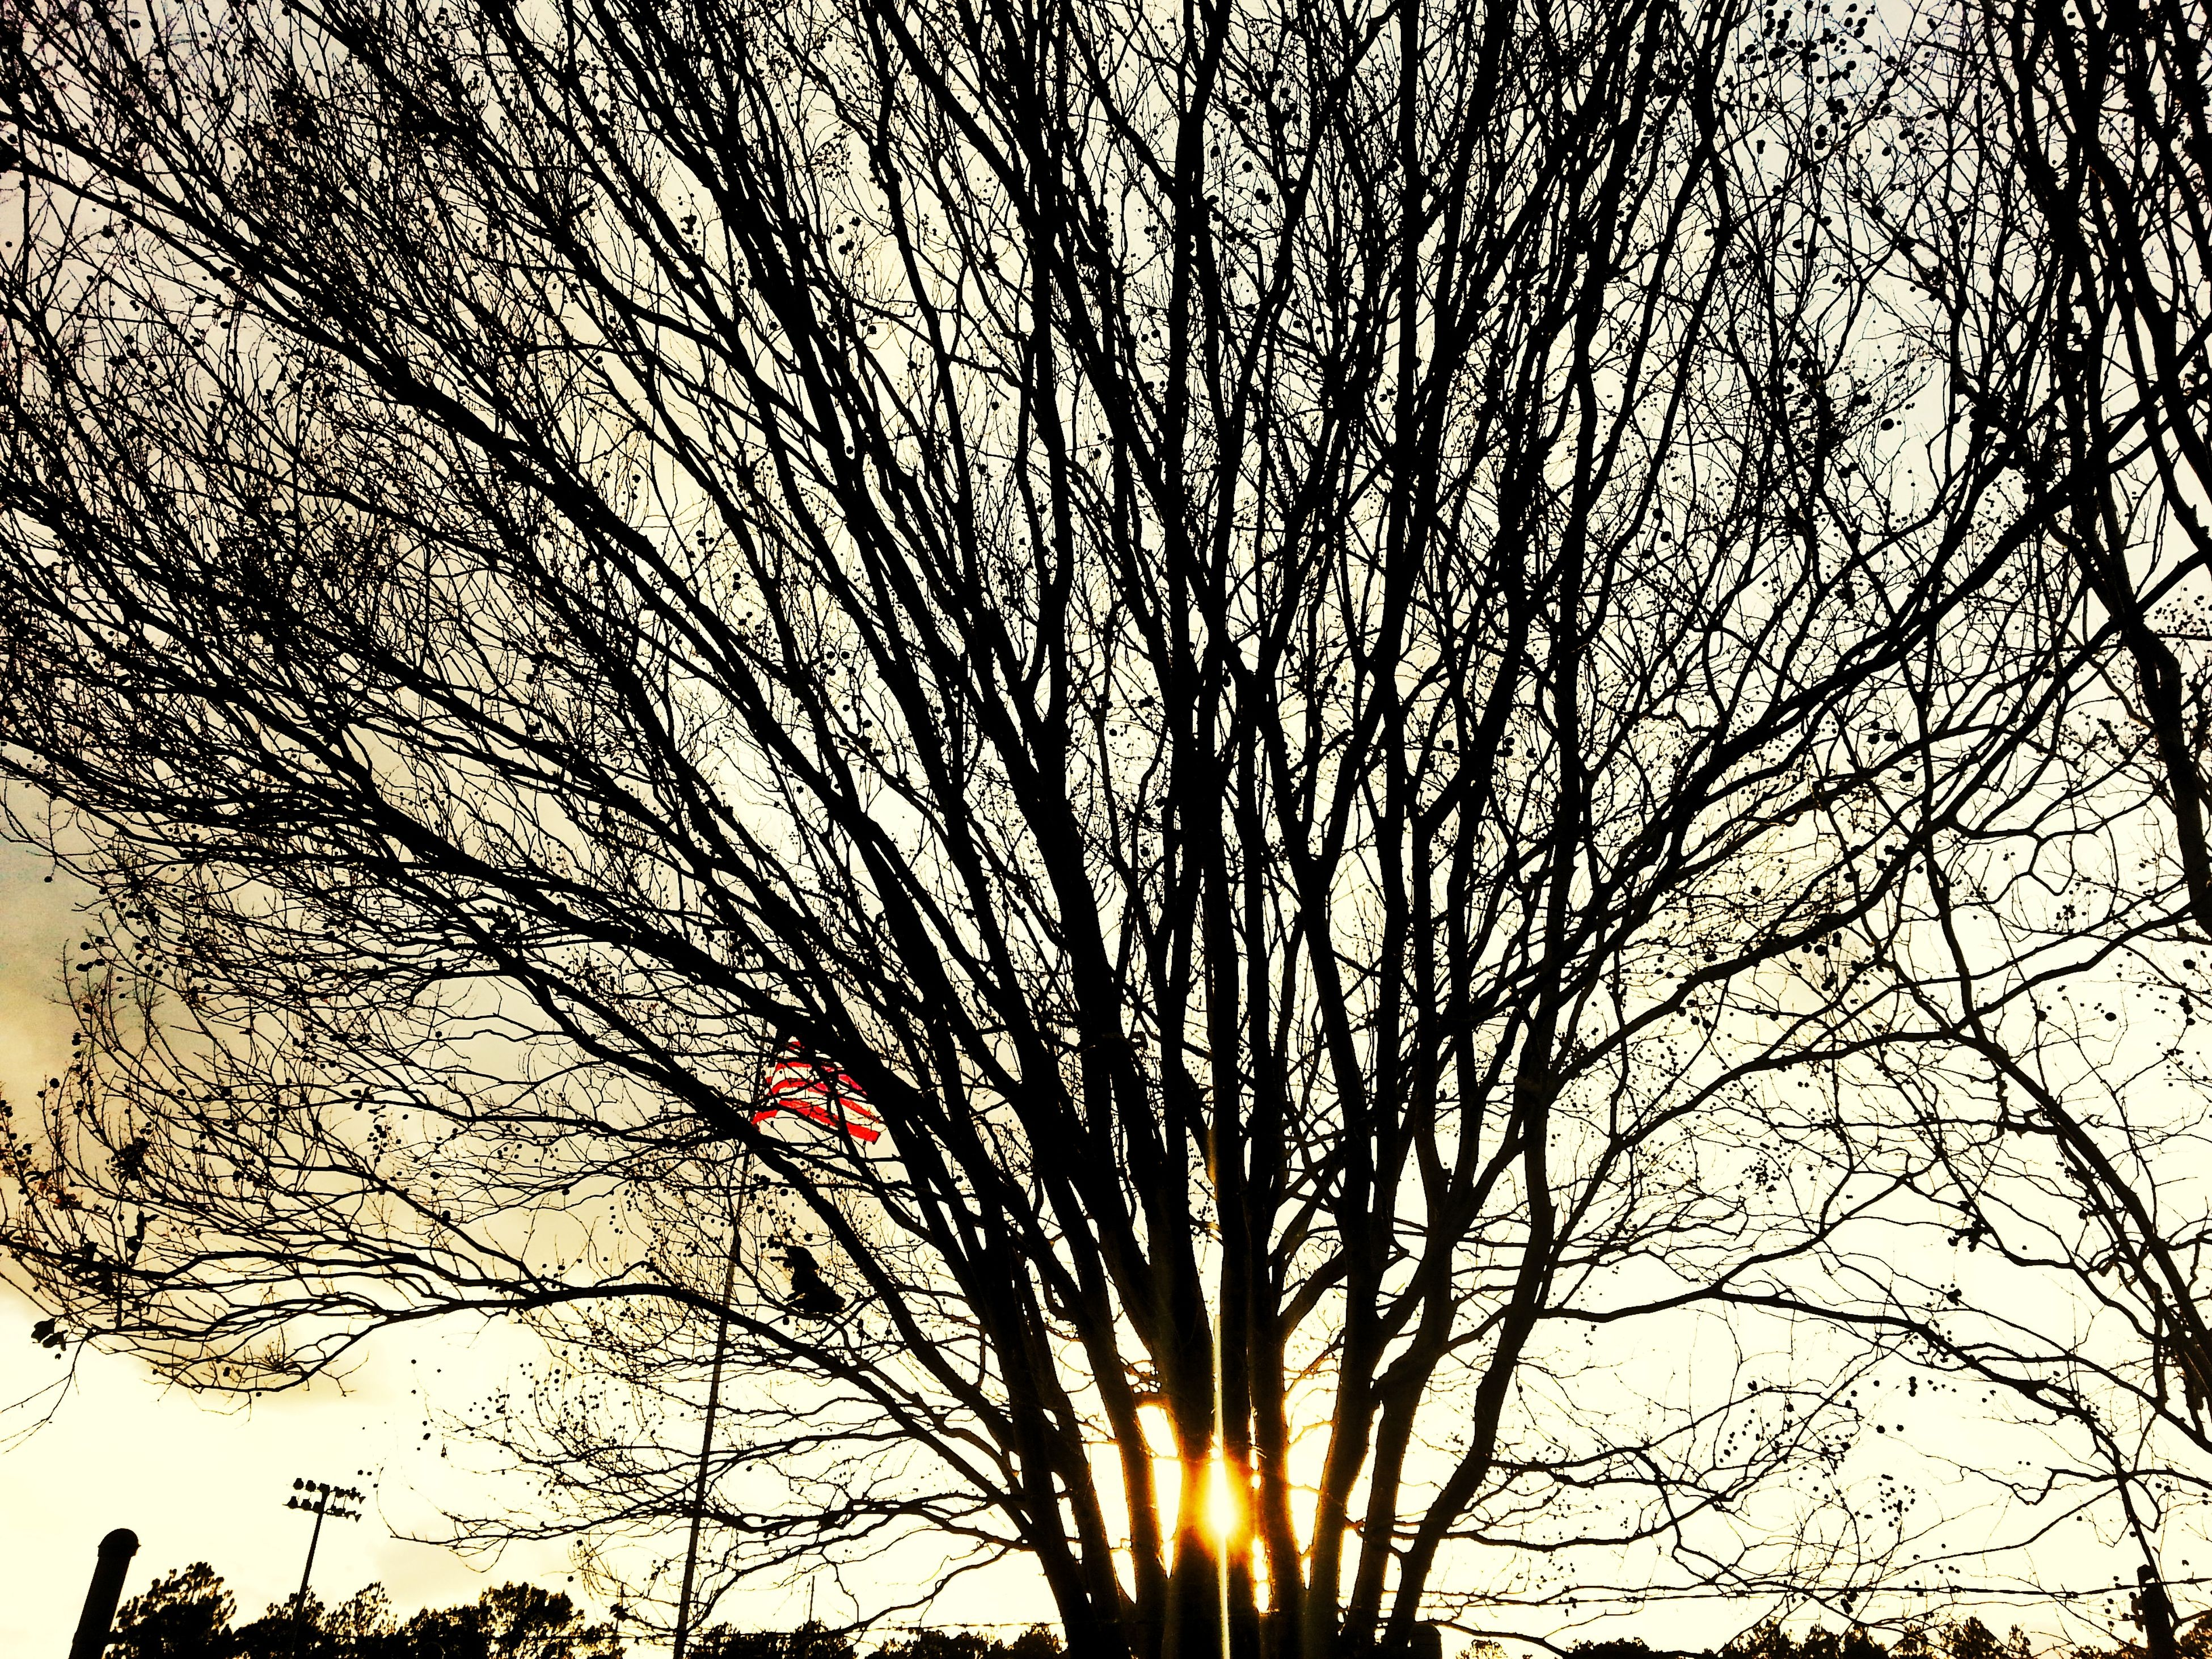 tree, no people, low angle view, growth, sky, sunset, outdoors, nature, beauty in nature, day